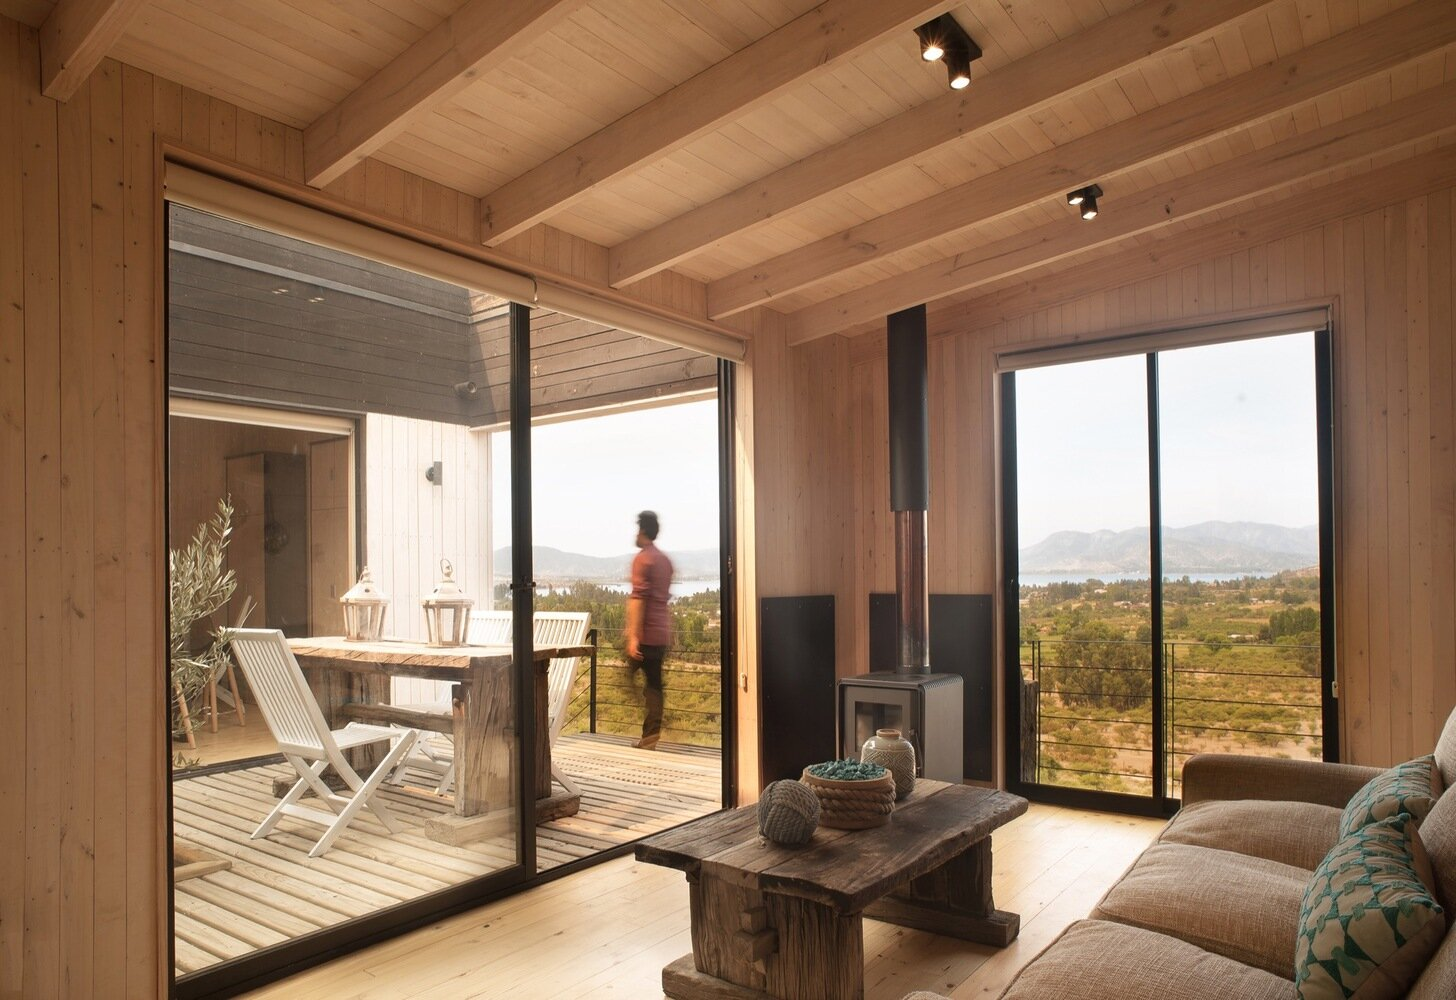 The Folding House - B+V Arquitectos - Chile - Living Room - Humble Homes